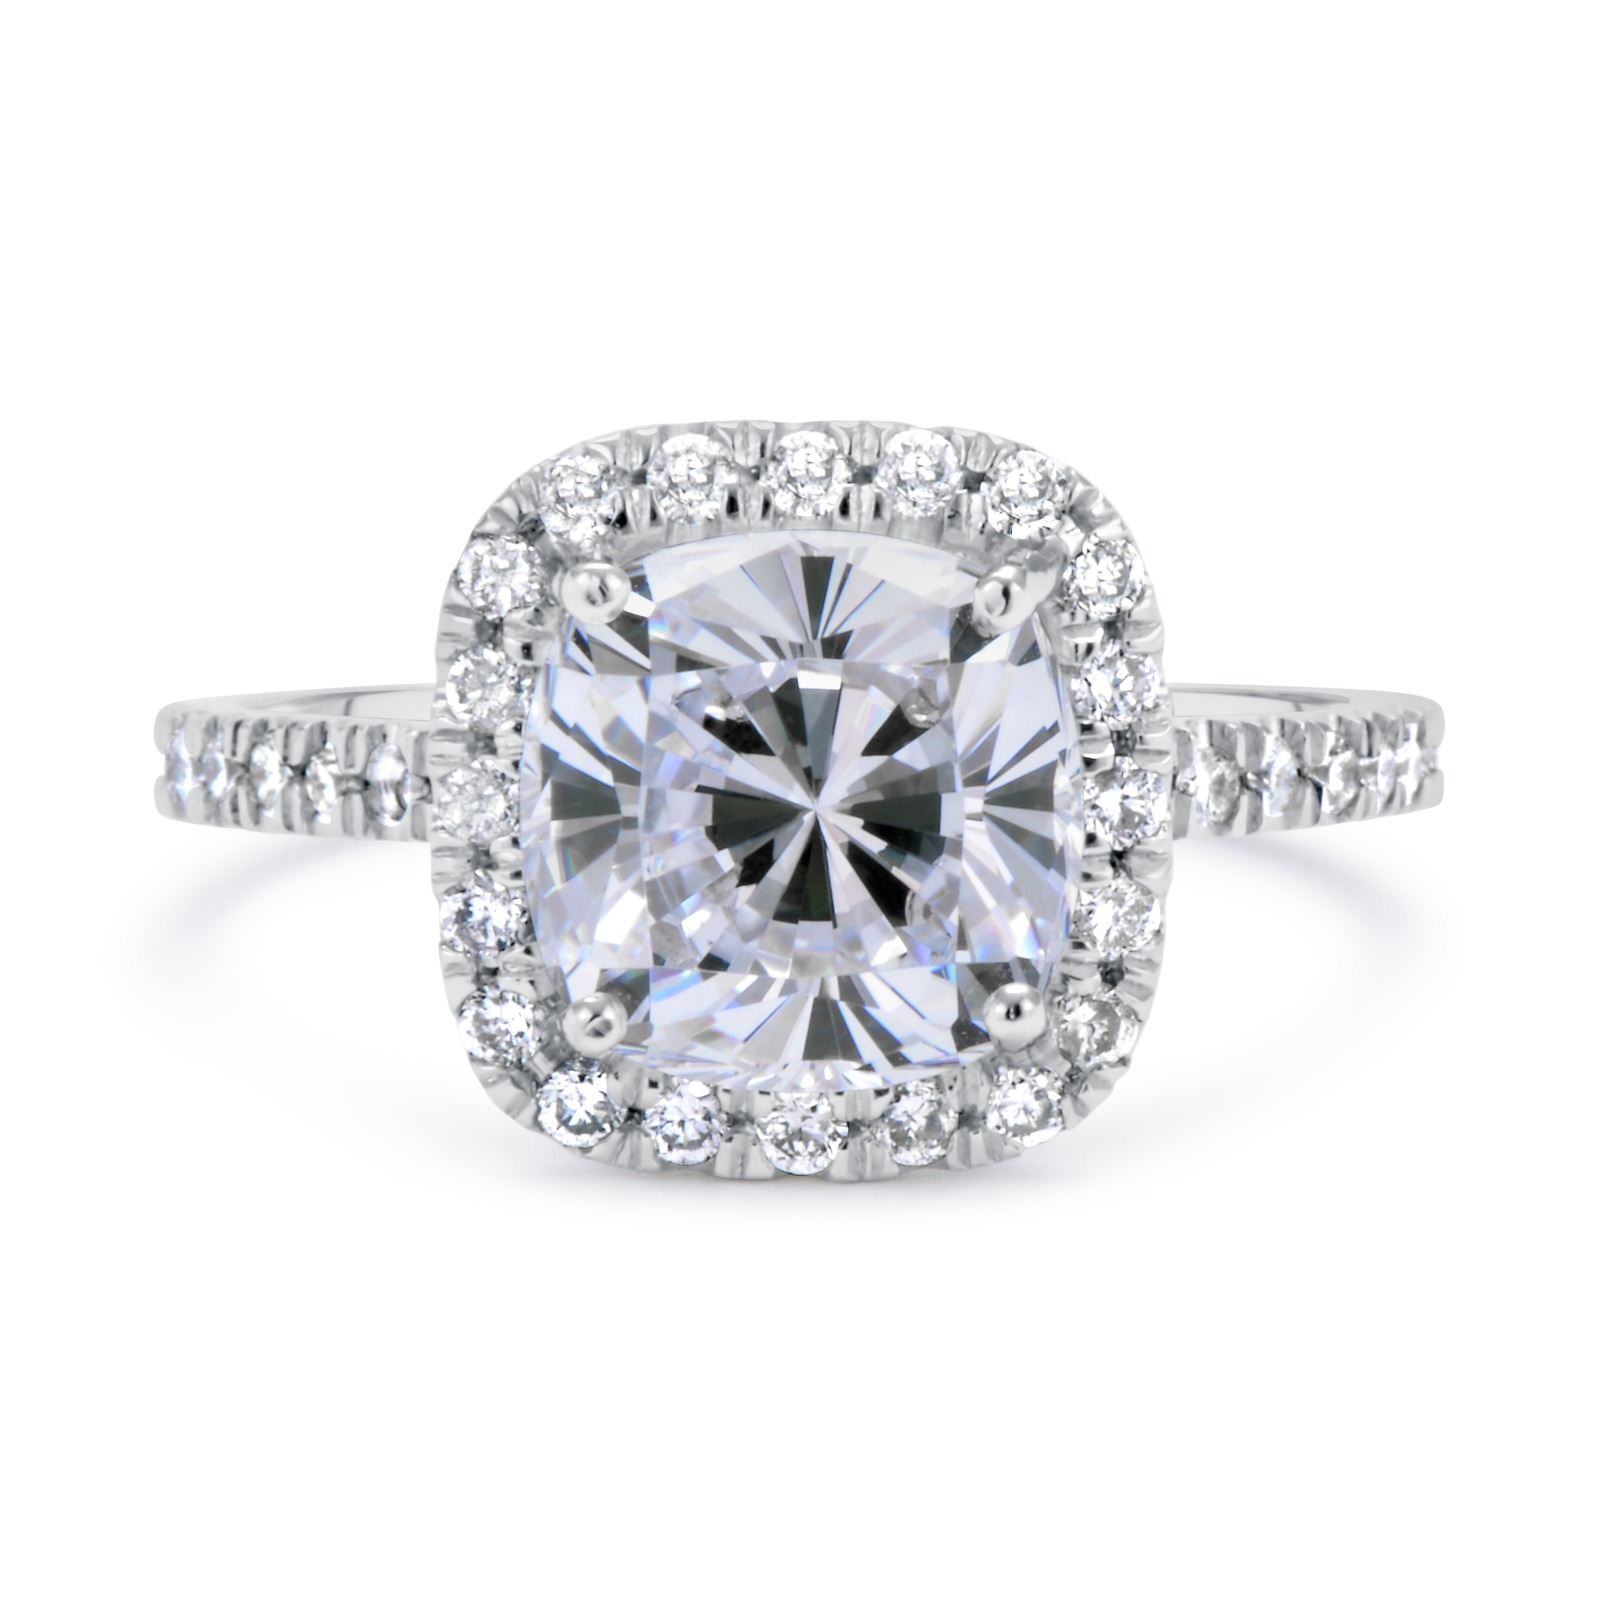 2 75 Ct Cushion Cut vs Diamond Solitaire Engagement Ring 14k White Gold